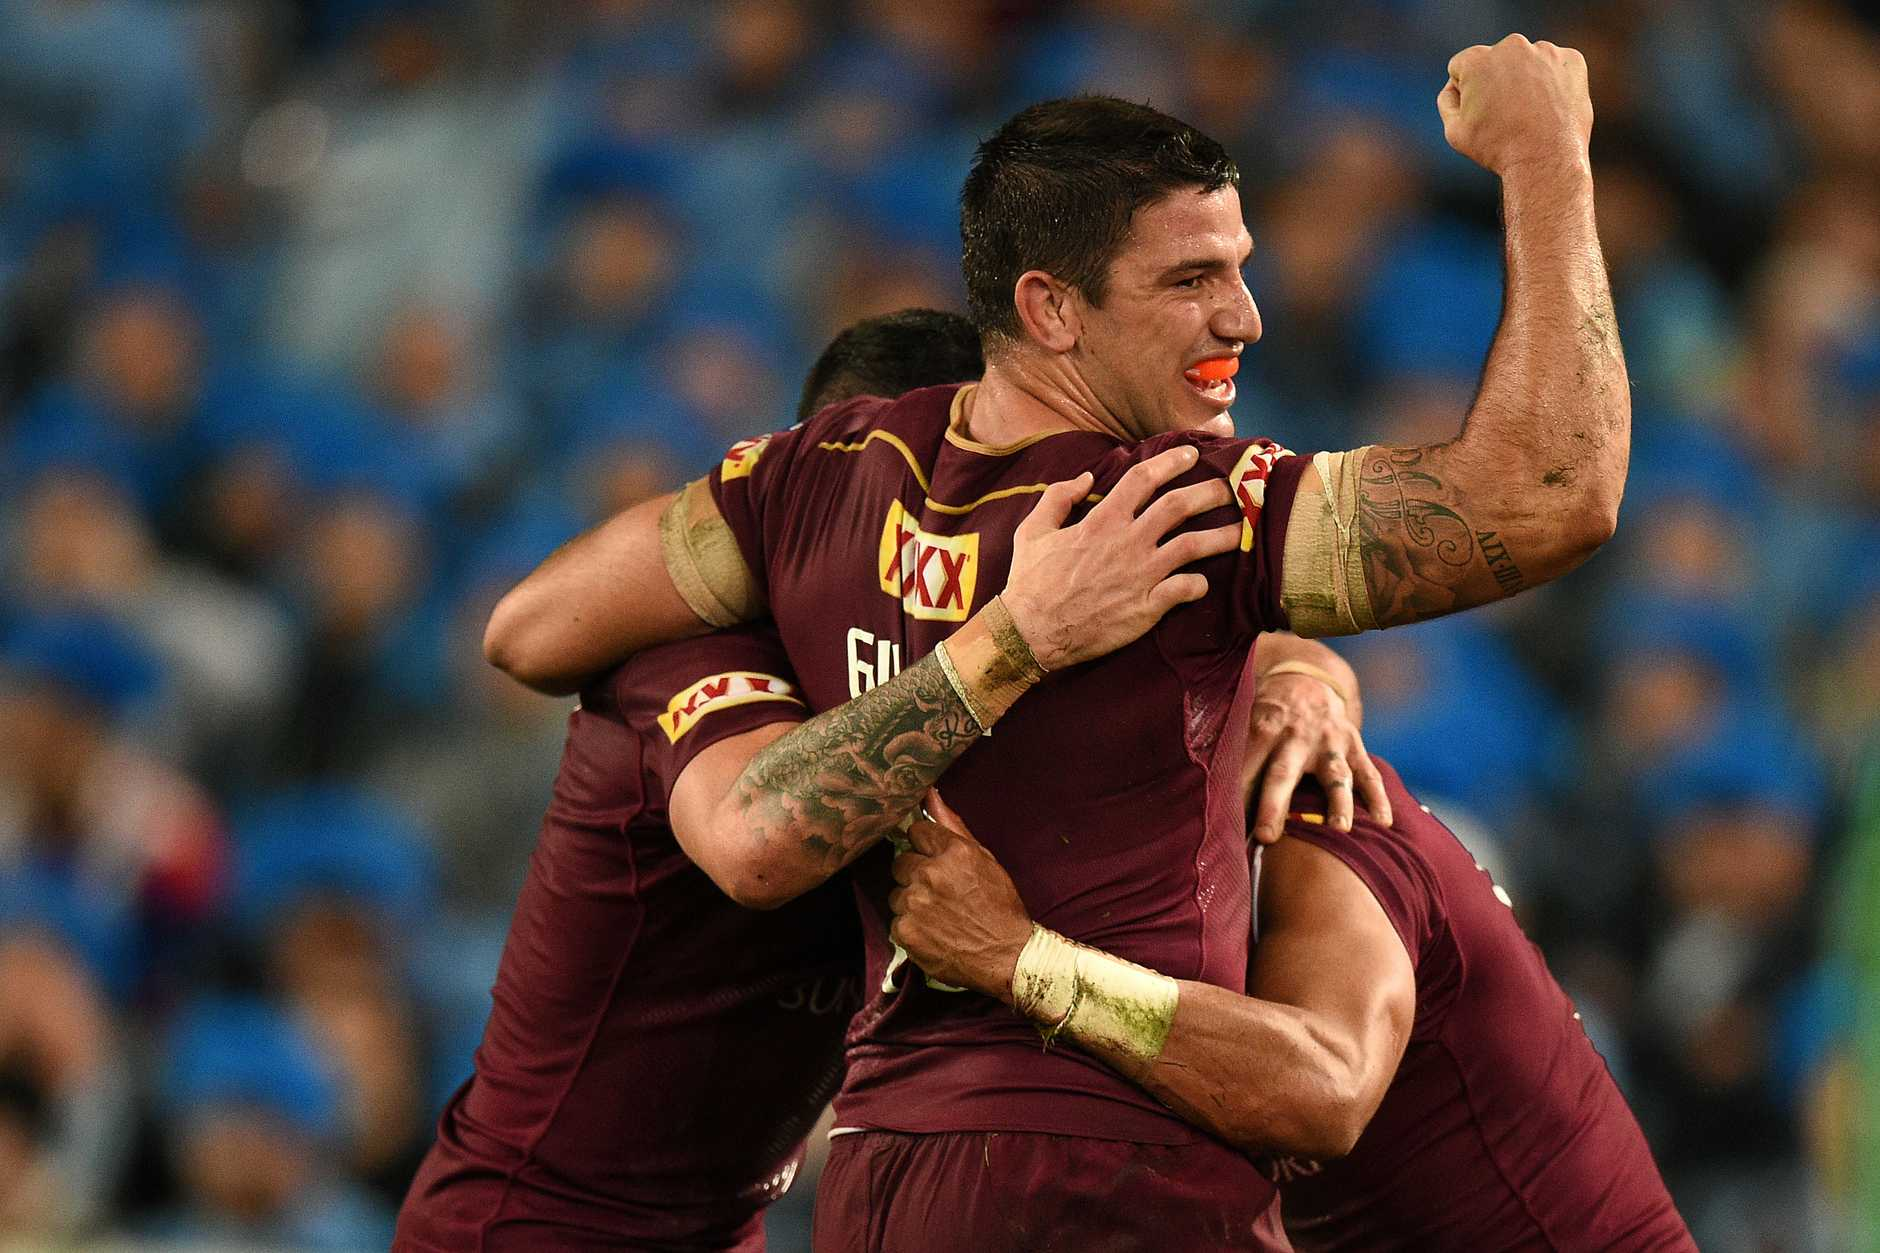 Matthew Gillett of the Maroons celebrates after Dane Gagai, (right), scored a try during State of Origin Game I between the NSW Blues and Queensland Maroons, at ANZ Stadium in Sydney on Wednesday, June 1, 2016. (AAP Image/Dan Himbrechts)